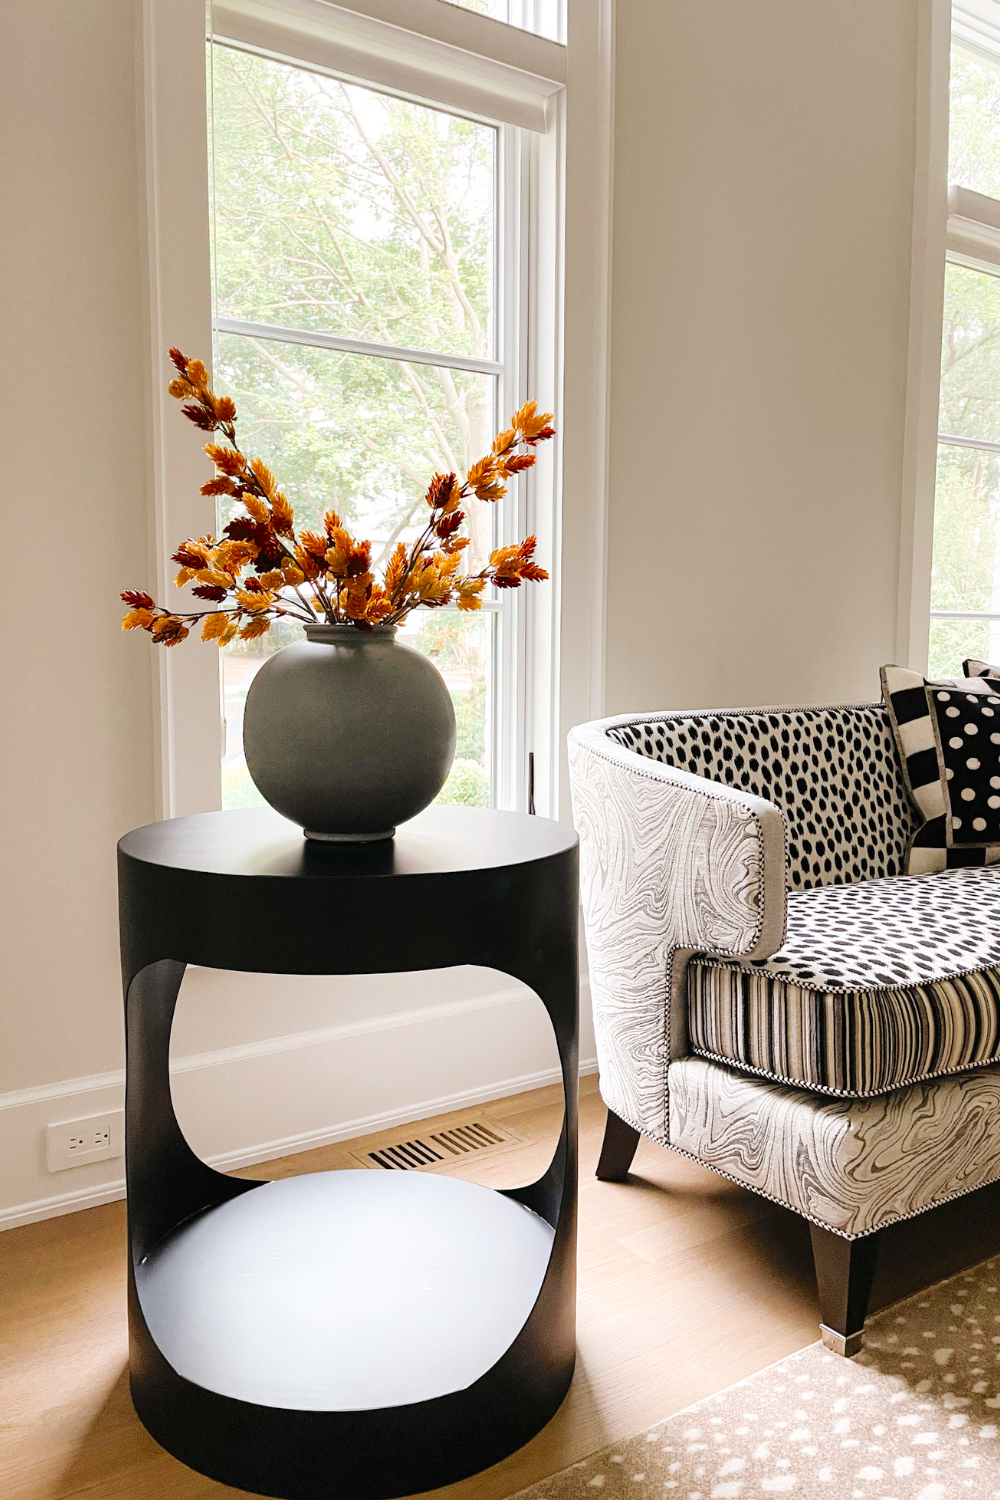 How to transition to fall home decor: faux stems